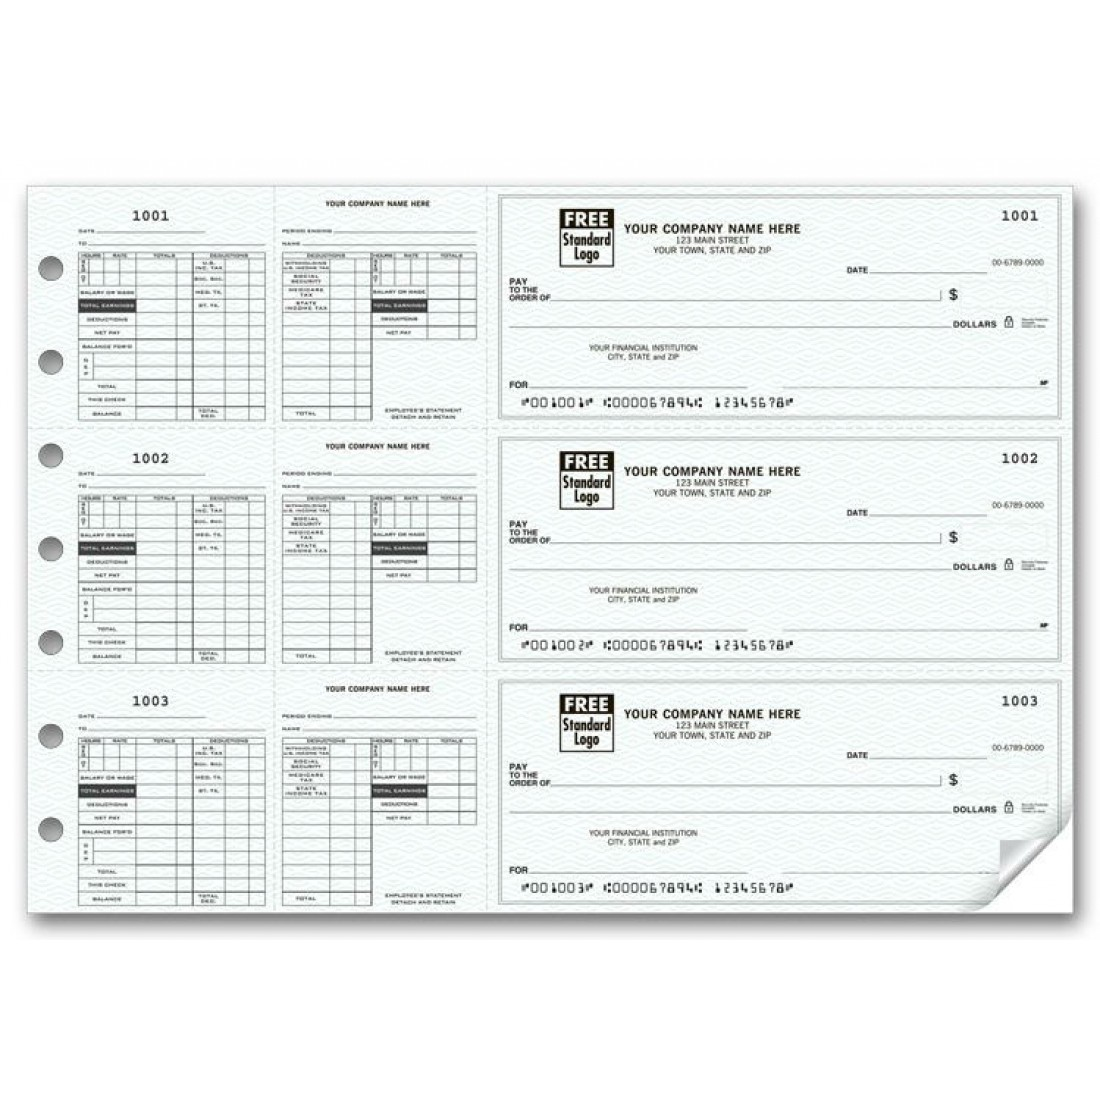 53229N, 3-To-A-Page Payroll Checks with Maximum Deductions